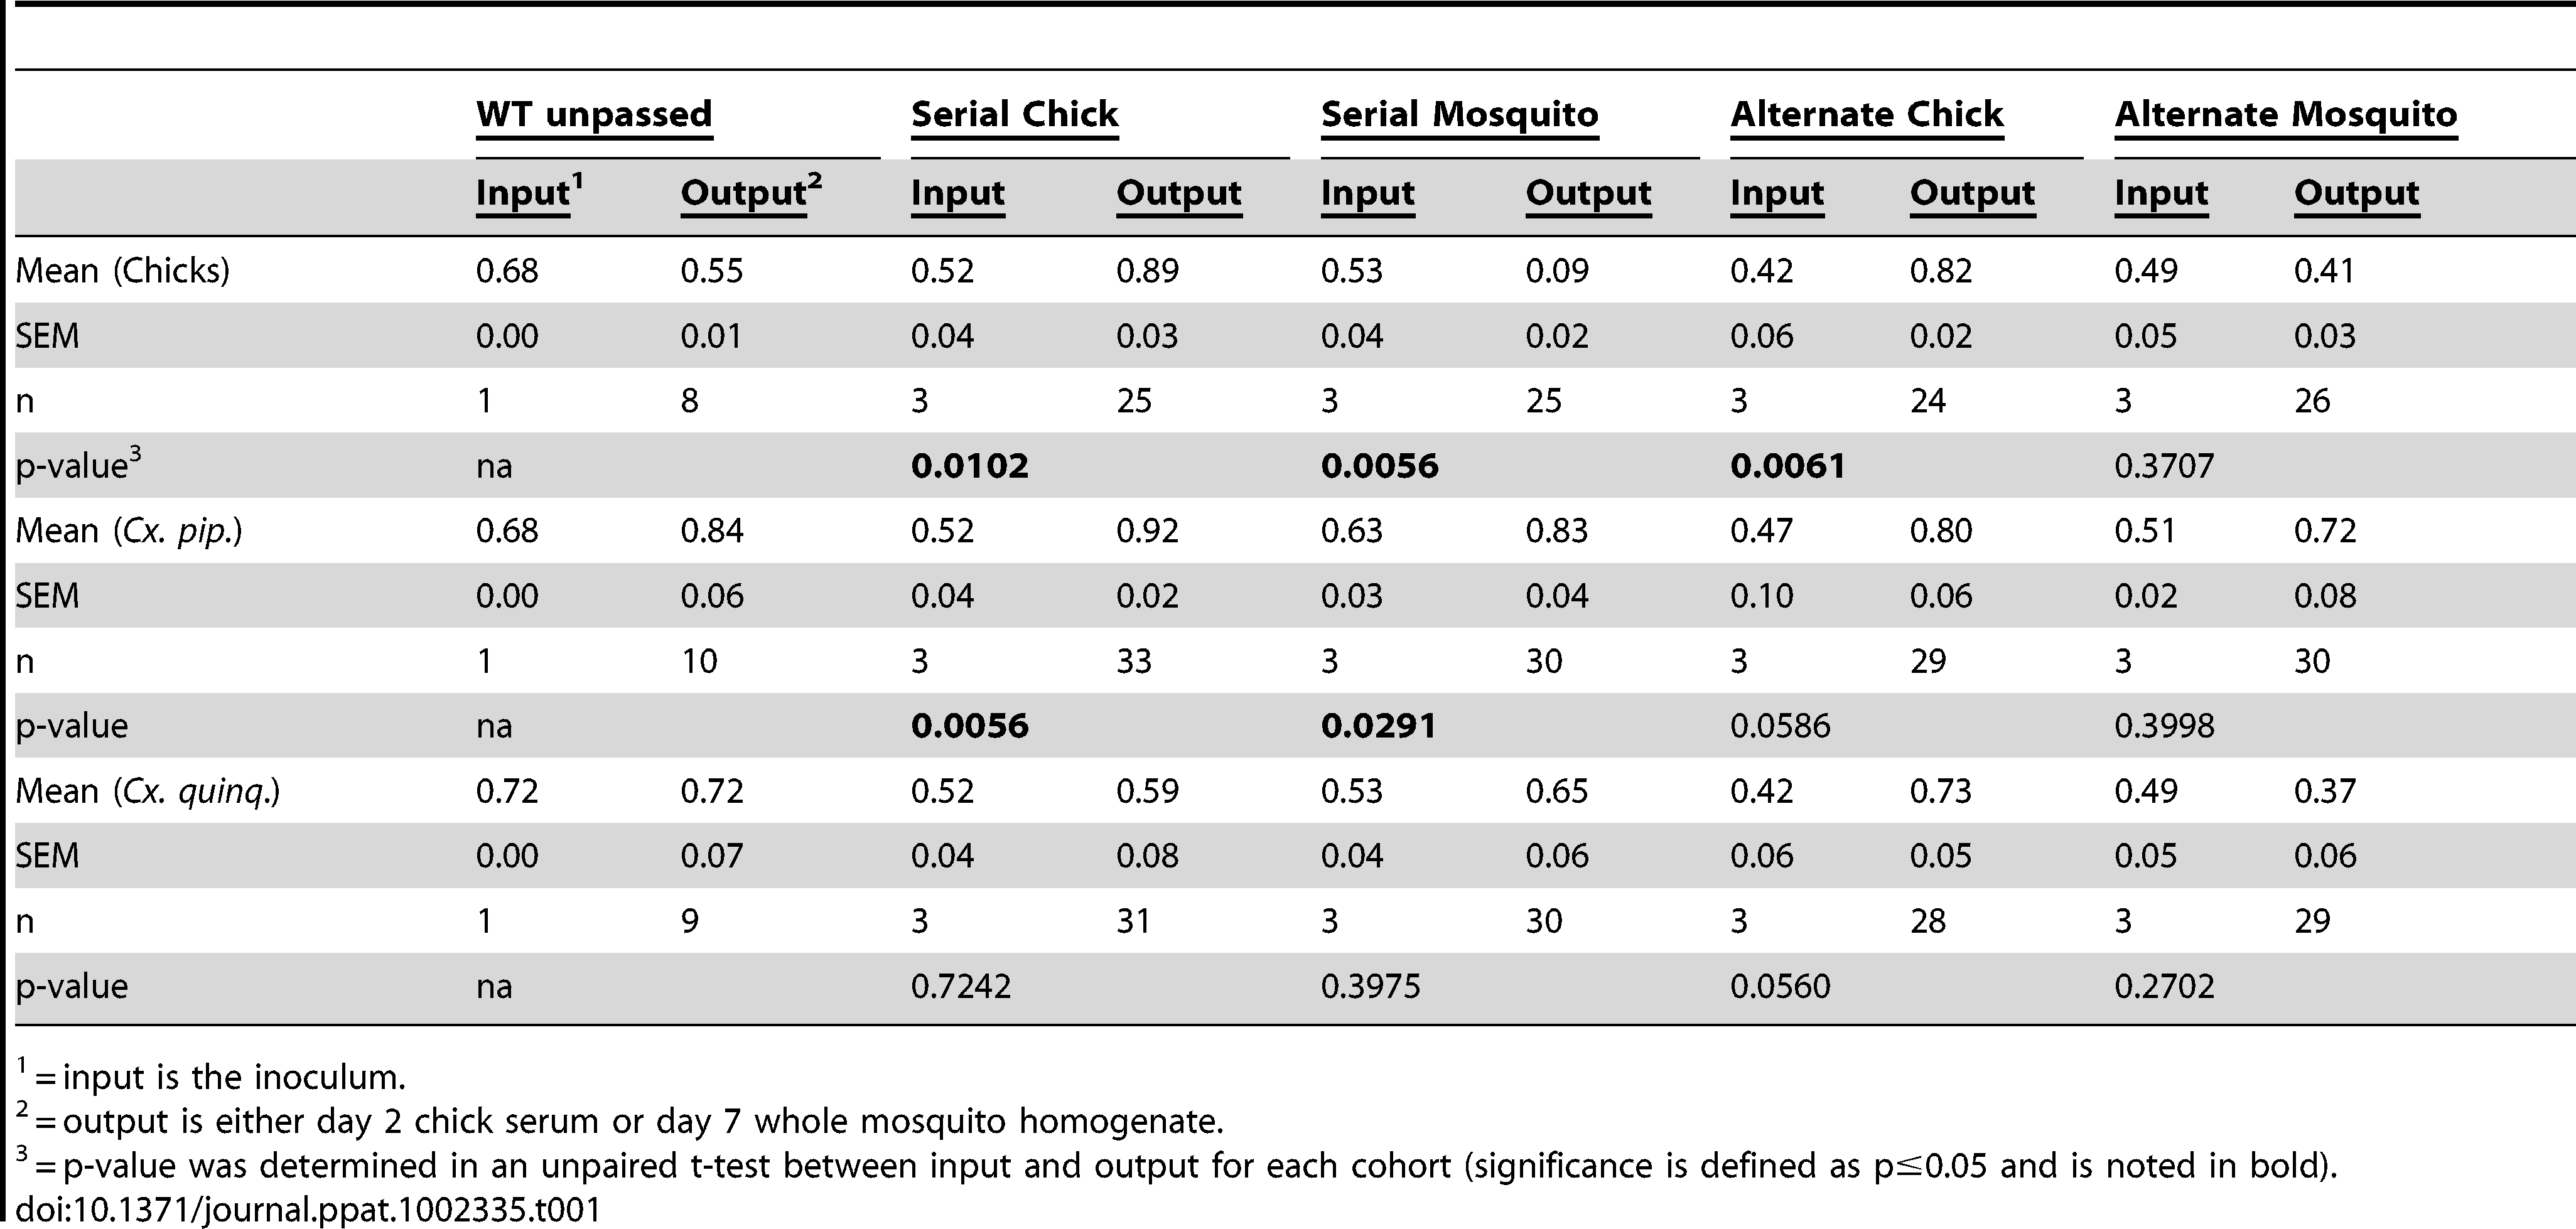 Combined average proportions of total WNV RNA comprised of competitor RNA after competition against a marked reference virus in chicks or mosquitoes.